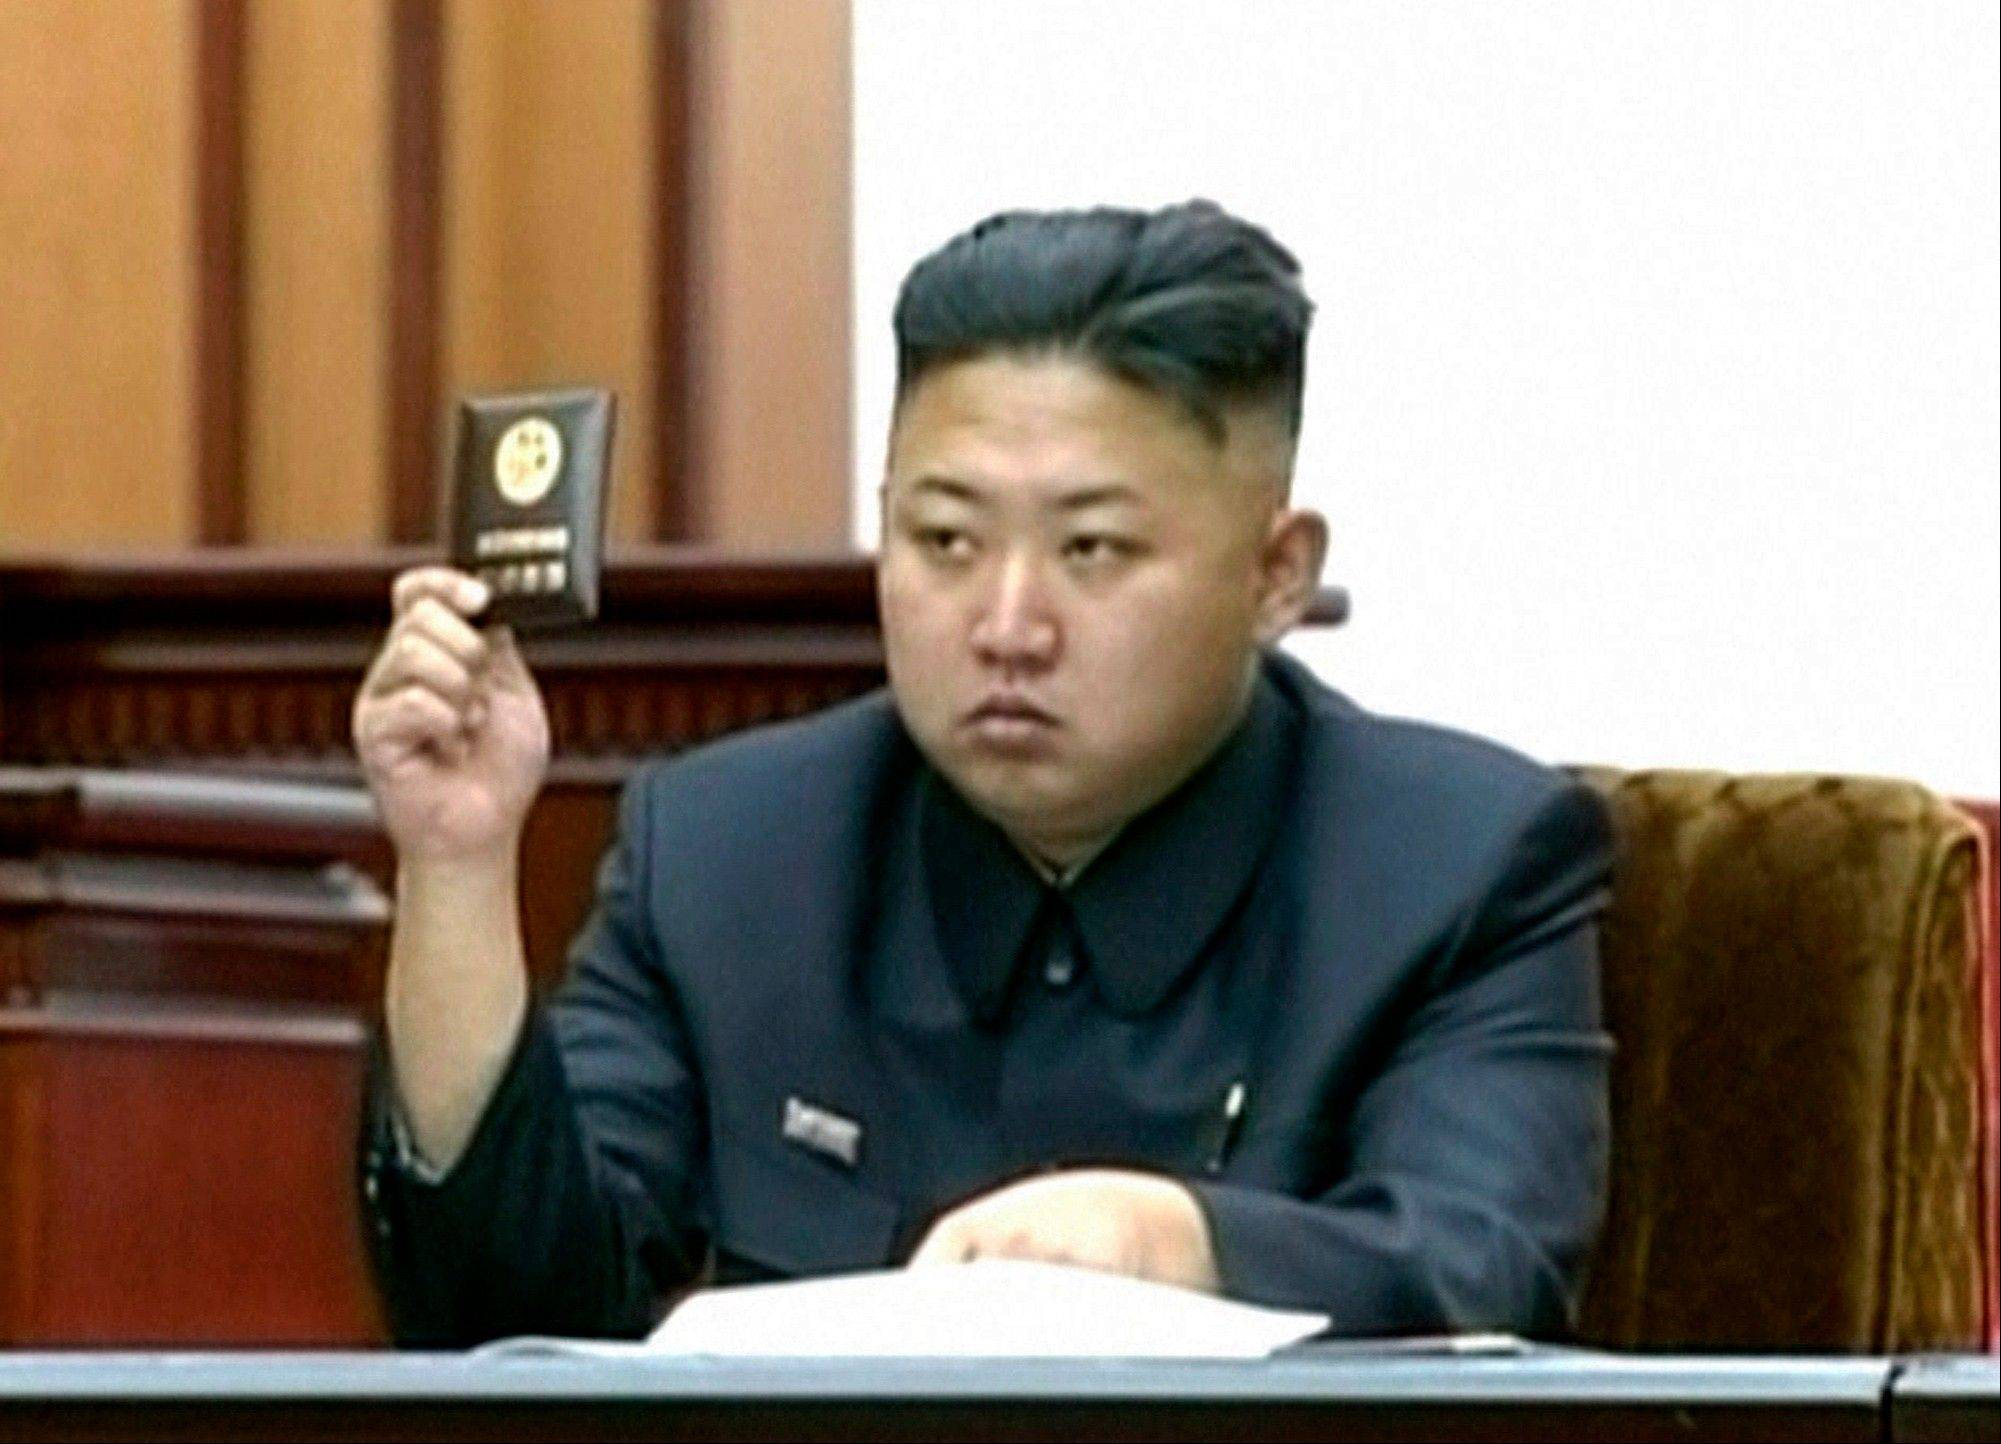 In this video image taken from KRT, North Korean leader Kim Jong Un holds up his credential at the Supreme People's Assembly's second meeting of the year, in Pyongyang, North Korea, Tuesday, Sept. 25, 2012. North Korea's parliament convened Tuesday for the second time in six months, passing a law that adds one year of compulsory education for children in the socialist nation, the first publicly-announced policy change under leader Kim.